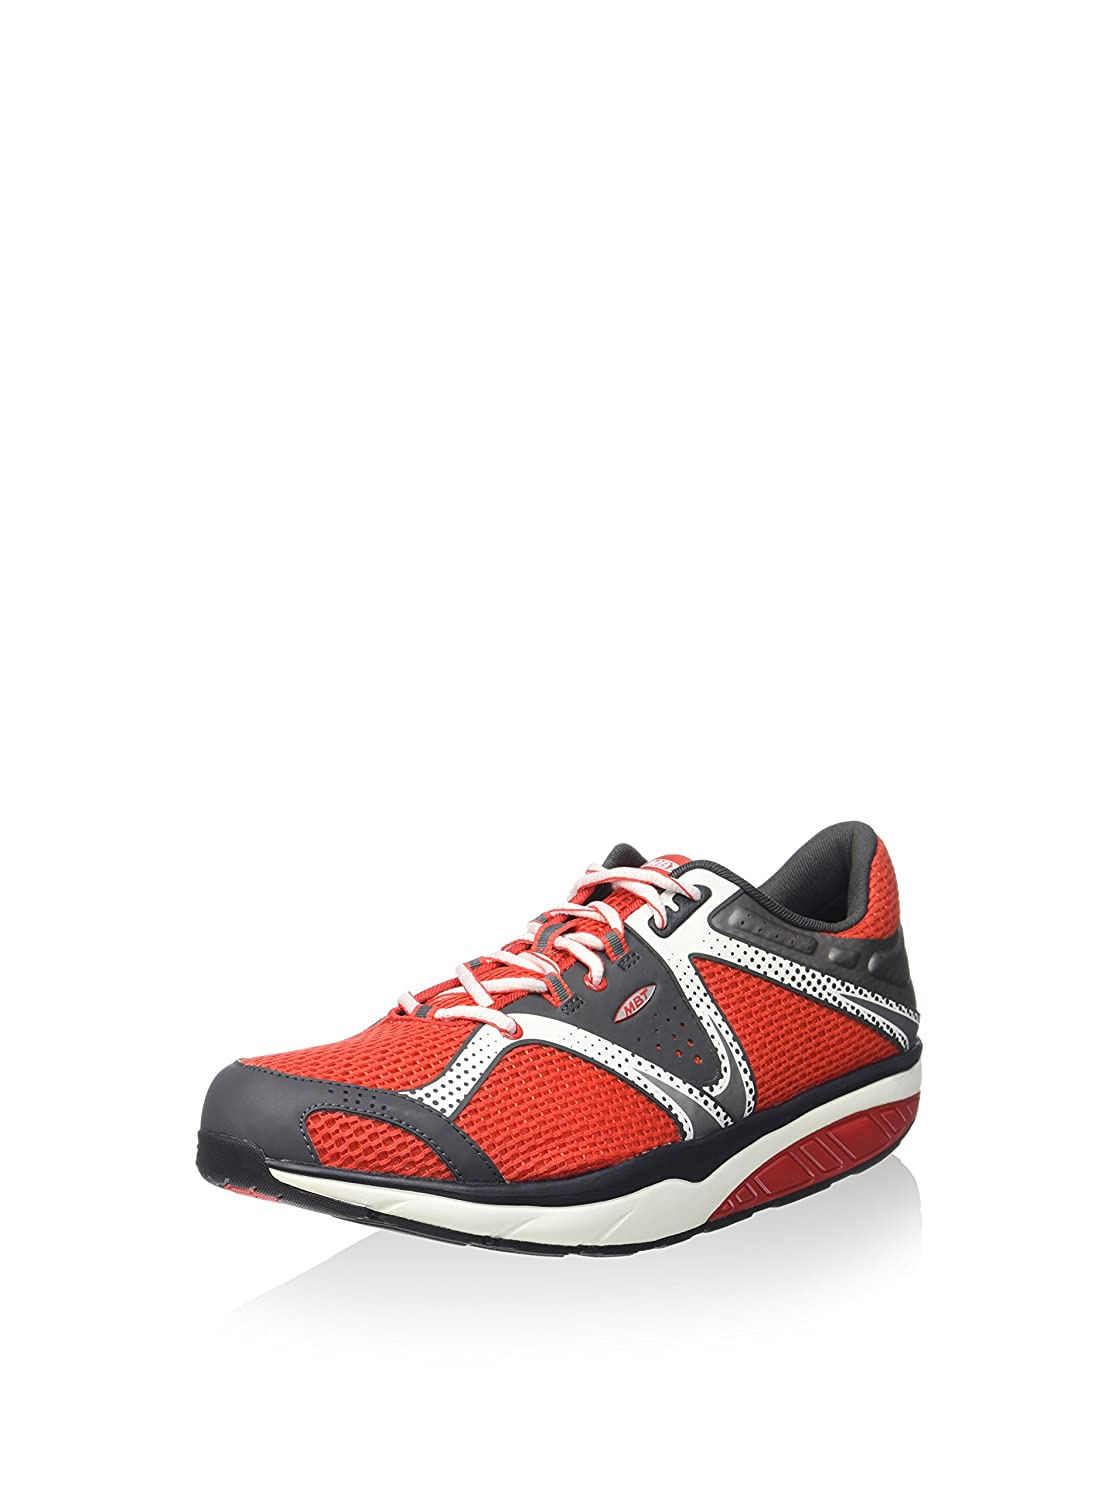 f35649c12e77 Simba MBT red Lace Men s Trainer 700422 Spotschuhe red Red Size  11   Amazon.co.uk  Shoes   Bags